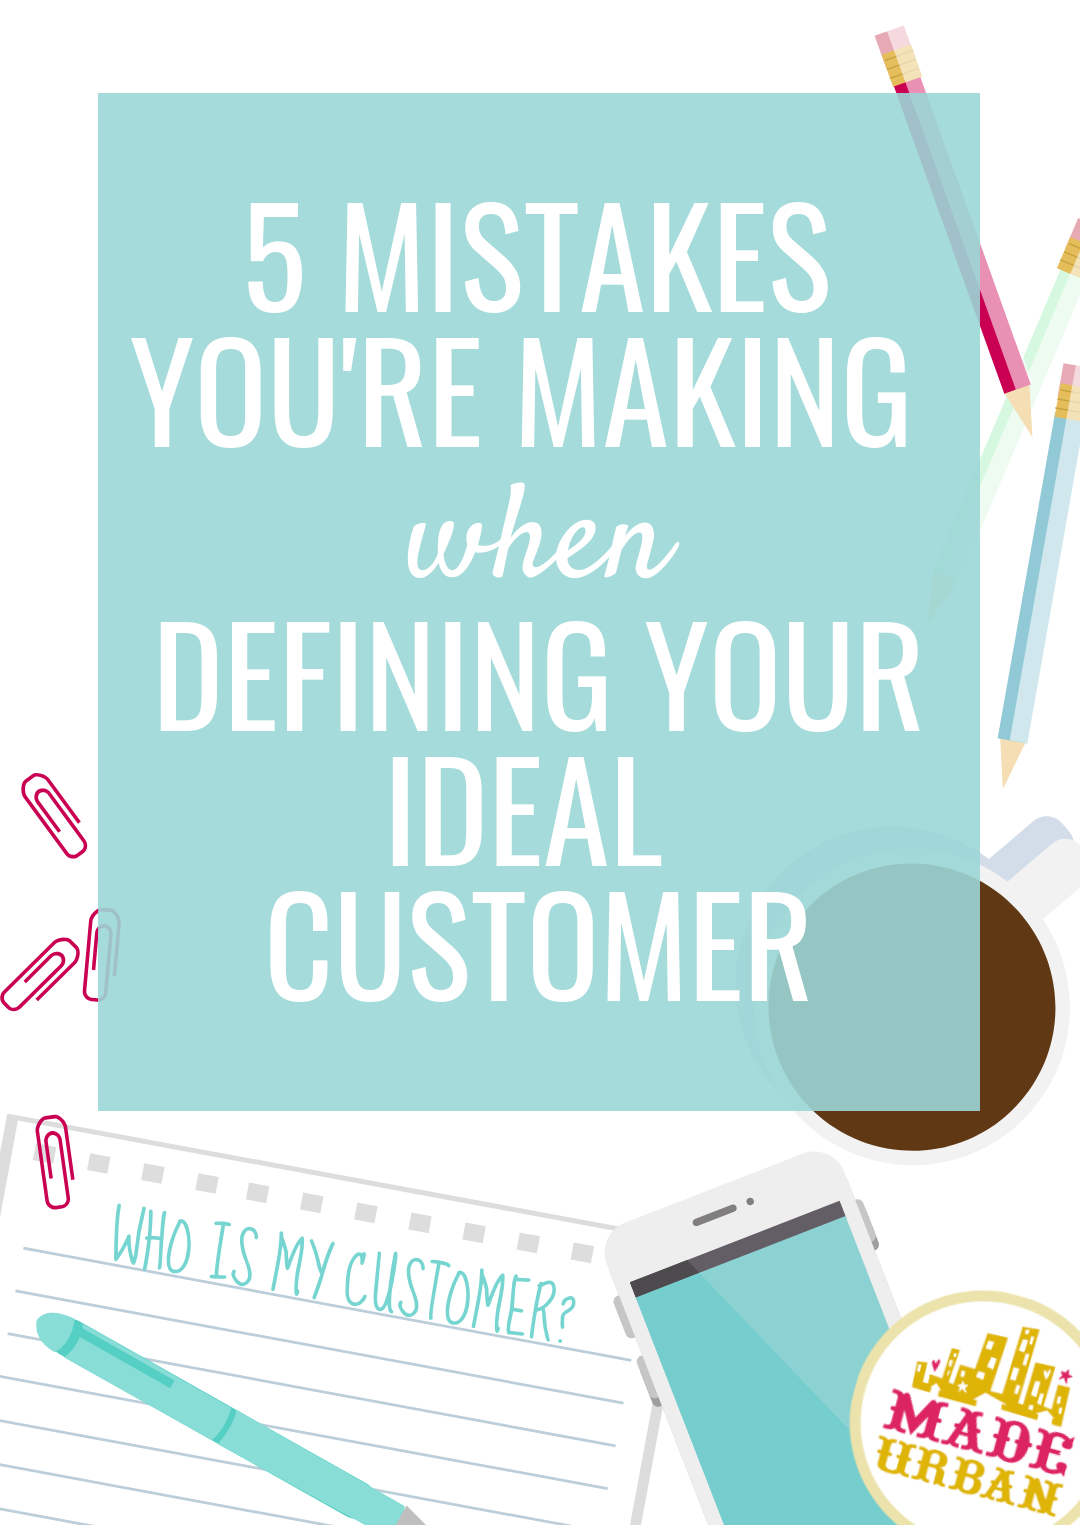 Many business owners define their ideal customer and create profiles for them but find those profiles useless when it comes to getting more sales. Here's what's wrong with most ideal customer profiles and what to fix.